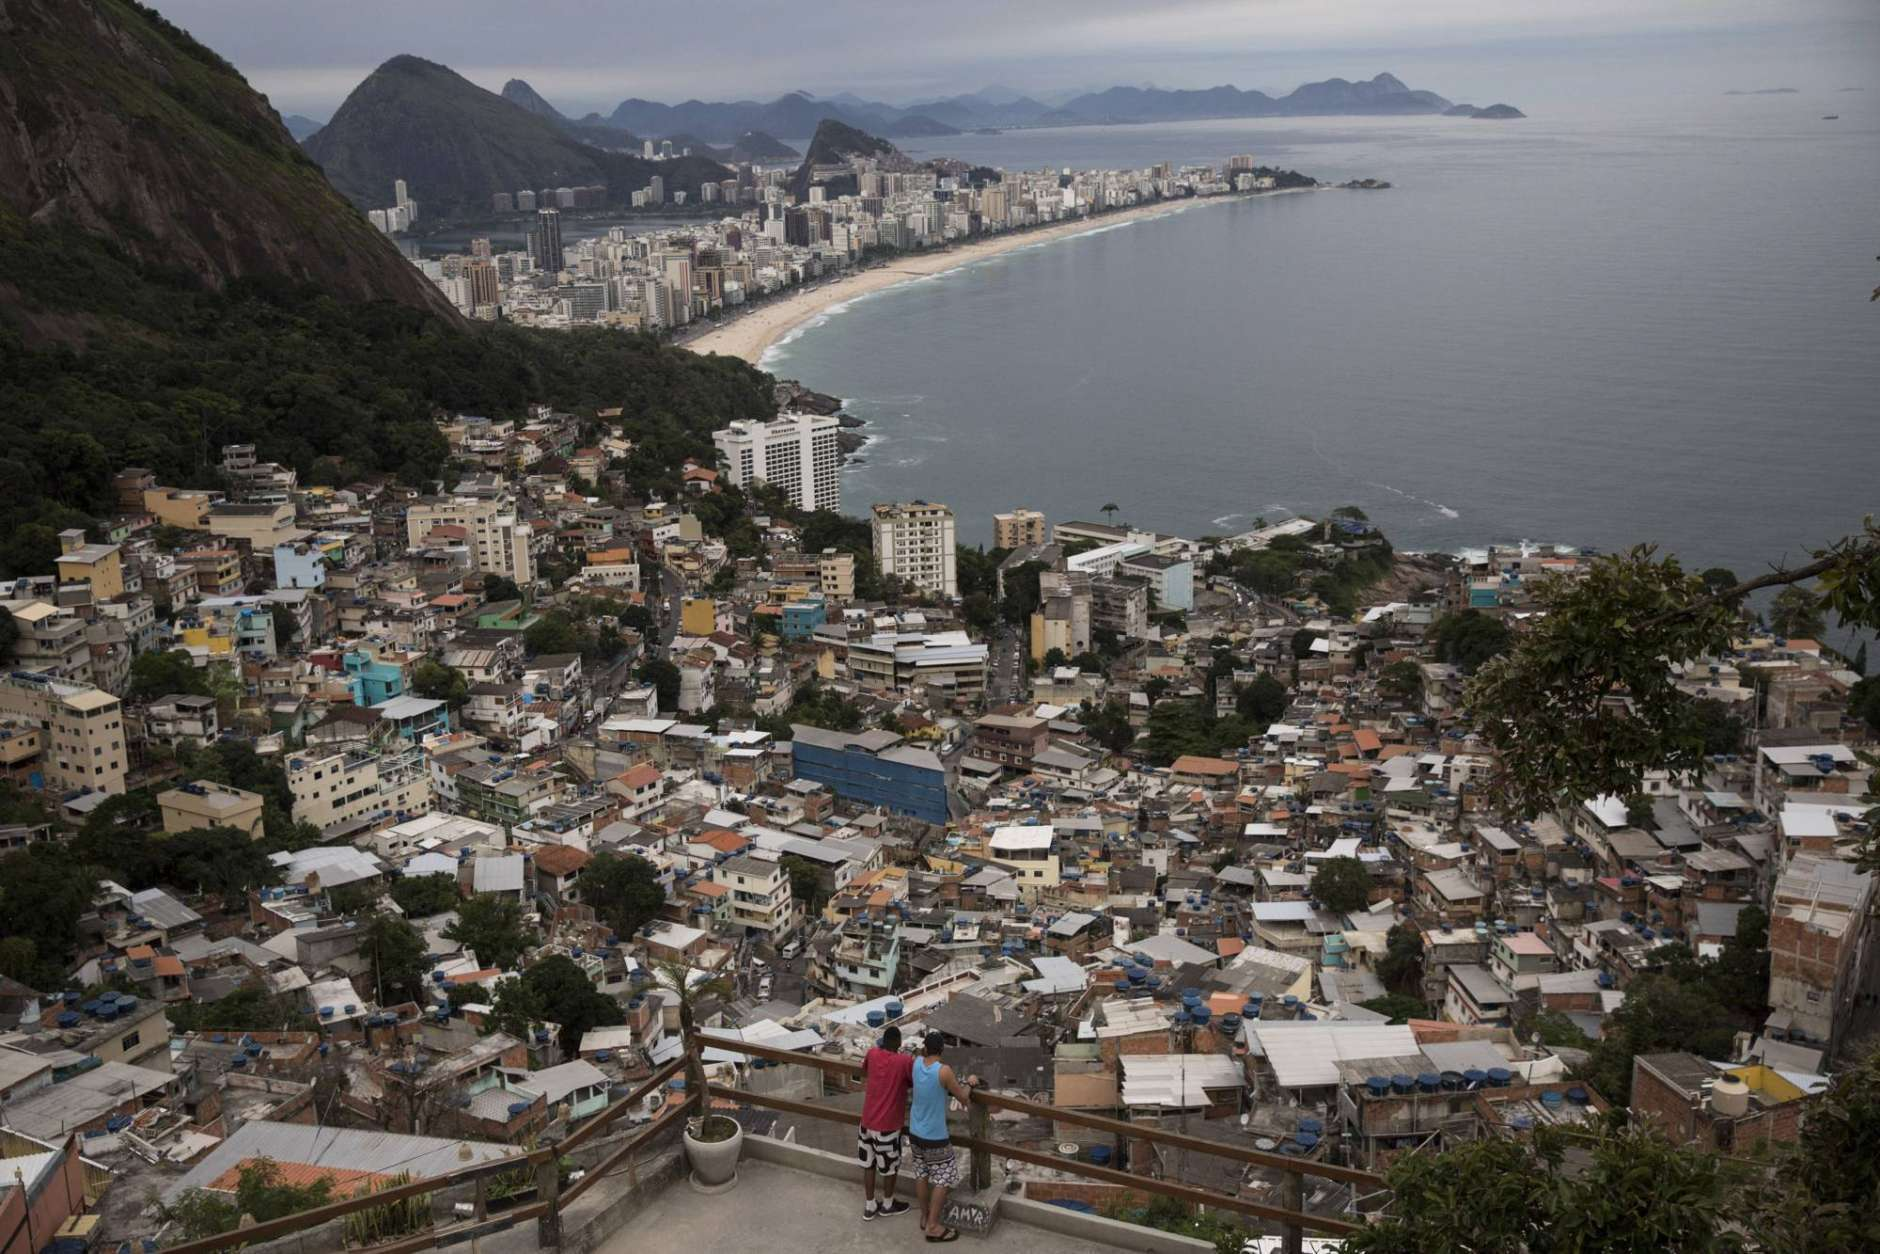 In this Oct. 29, 2017 photo, men overlook the city from the Vidigal slum, in Rio de Janeiro, Brazil. Opening the hillside favelas to tourists seemed like a winning idea: they get breathtaking views, the slum residents could cash in, and foreign visitors would see another part of the city, but soaring violence has rekindled a concern about safety. (AP Photo/Renata Brito)